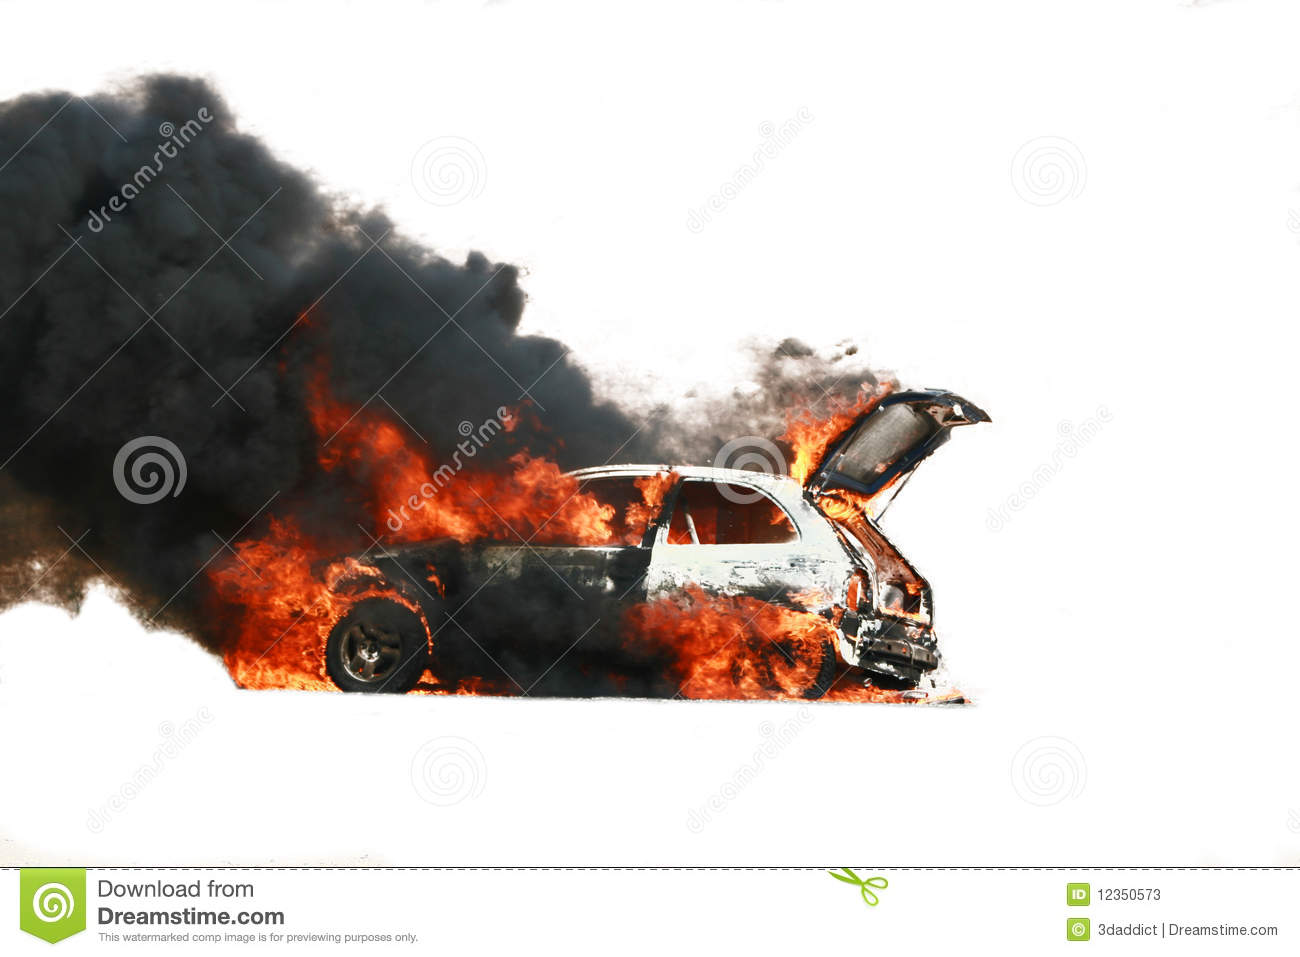 Car Explosion Stock Image. Image Of Glass, Body, Wheel